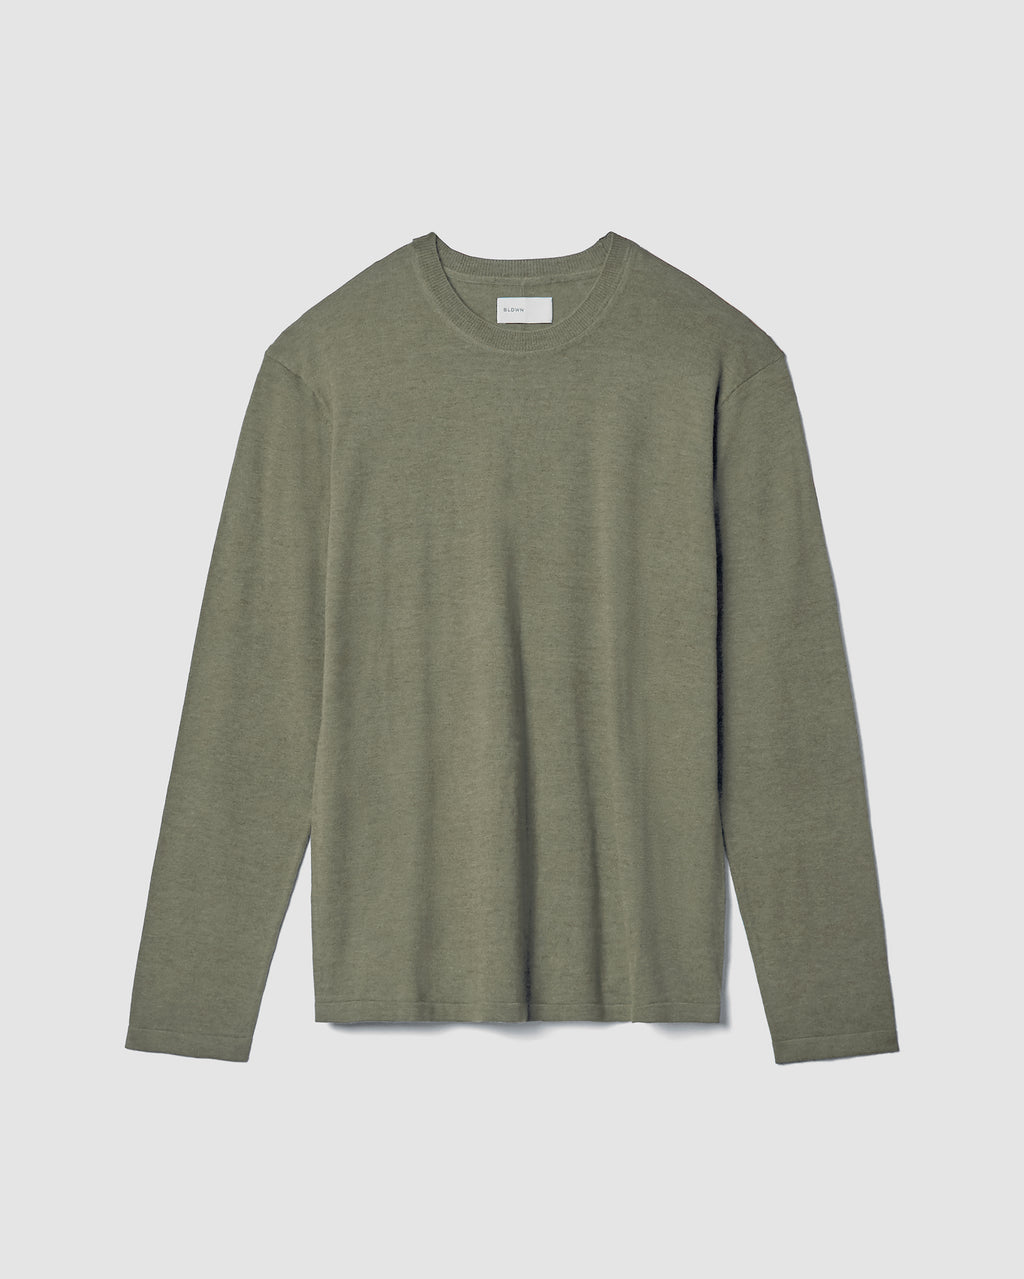 The Inez Sweater in Light Olive